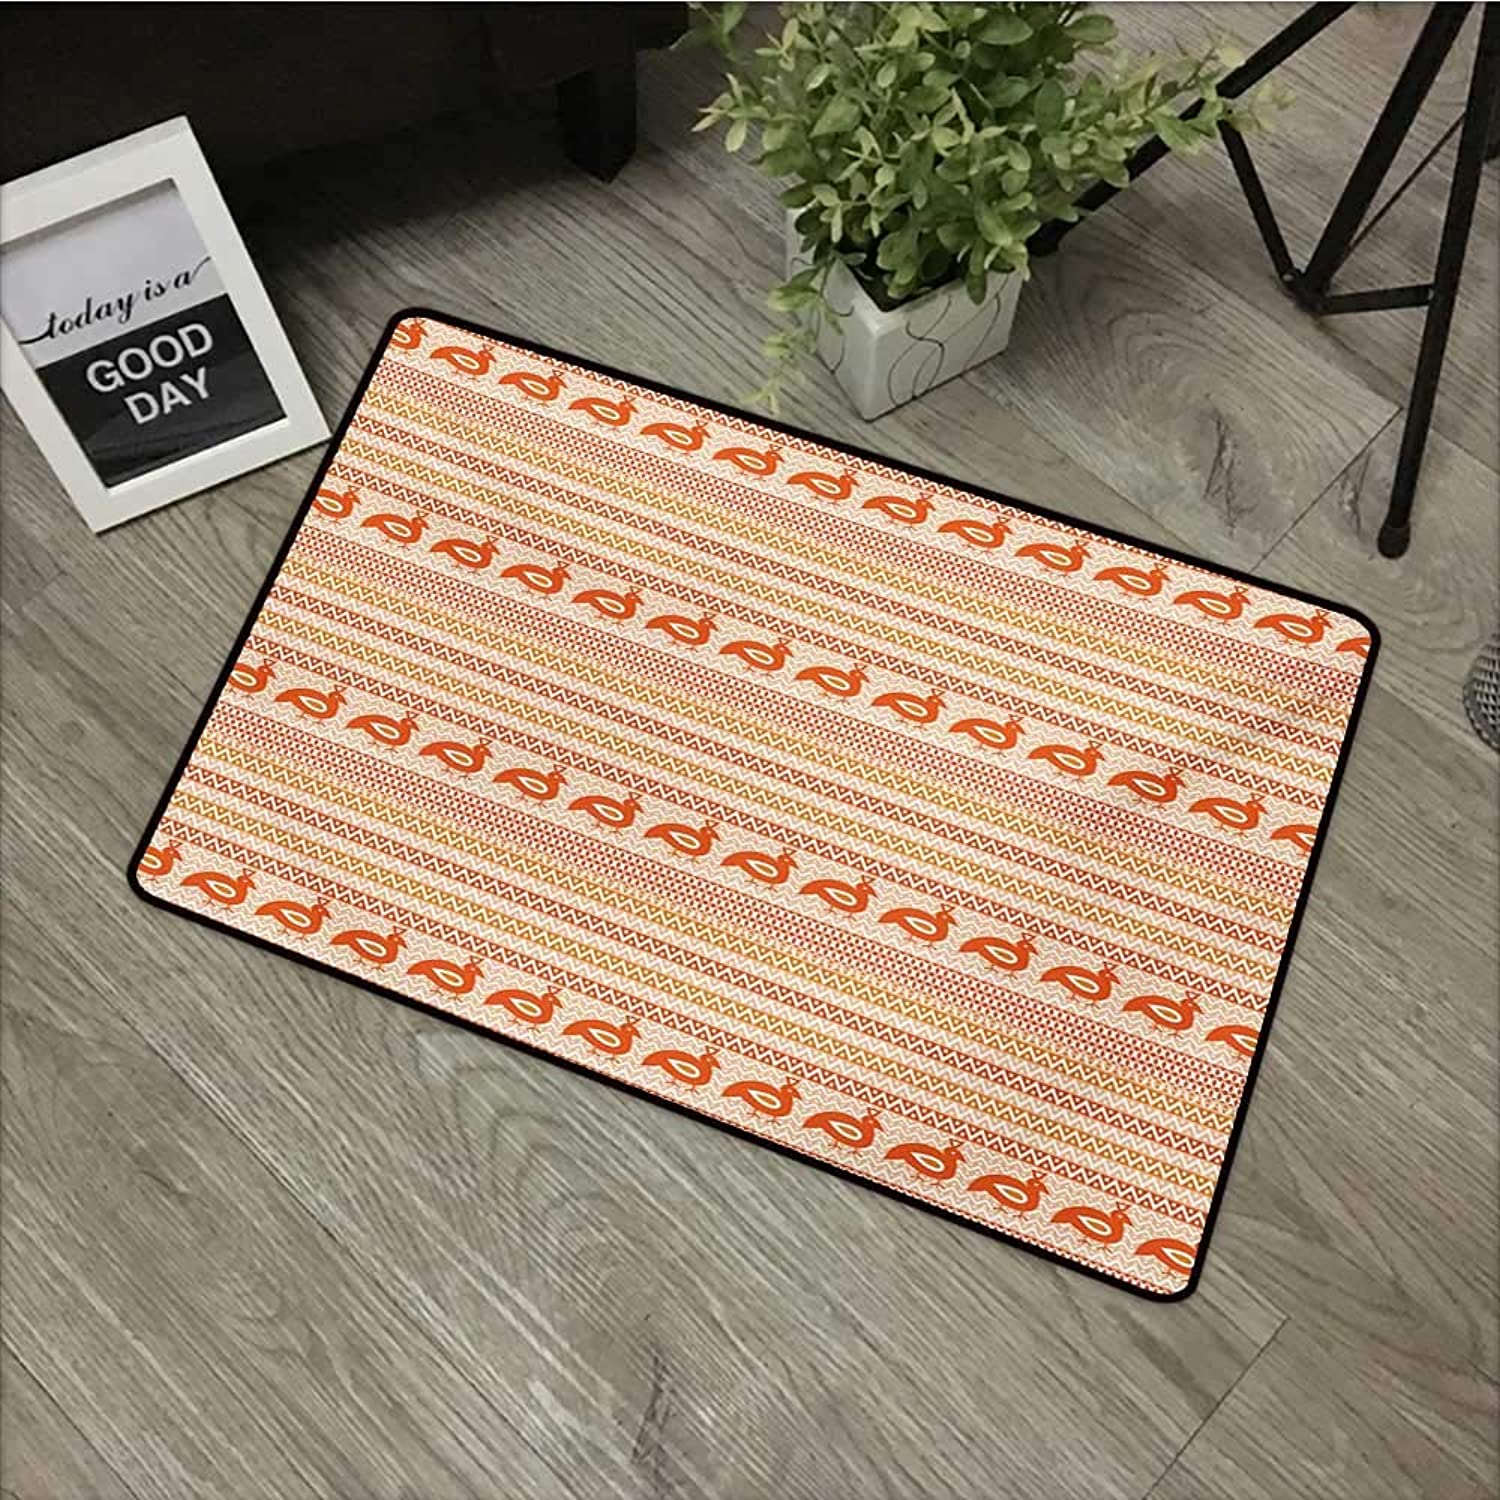 Pool Anti-Slip Door mat W35 x L59 INCH Kente Pattern,Abstract Tribal Ornament with Zigzags and Folk Stylized Birds,orange Beige and White with Non-Slip Backing Door Mat Carpet